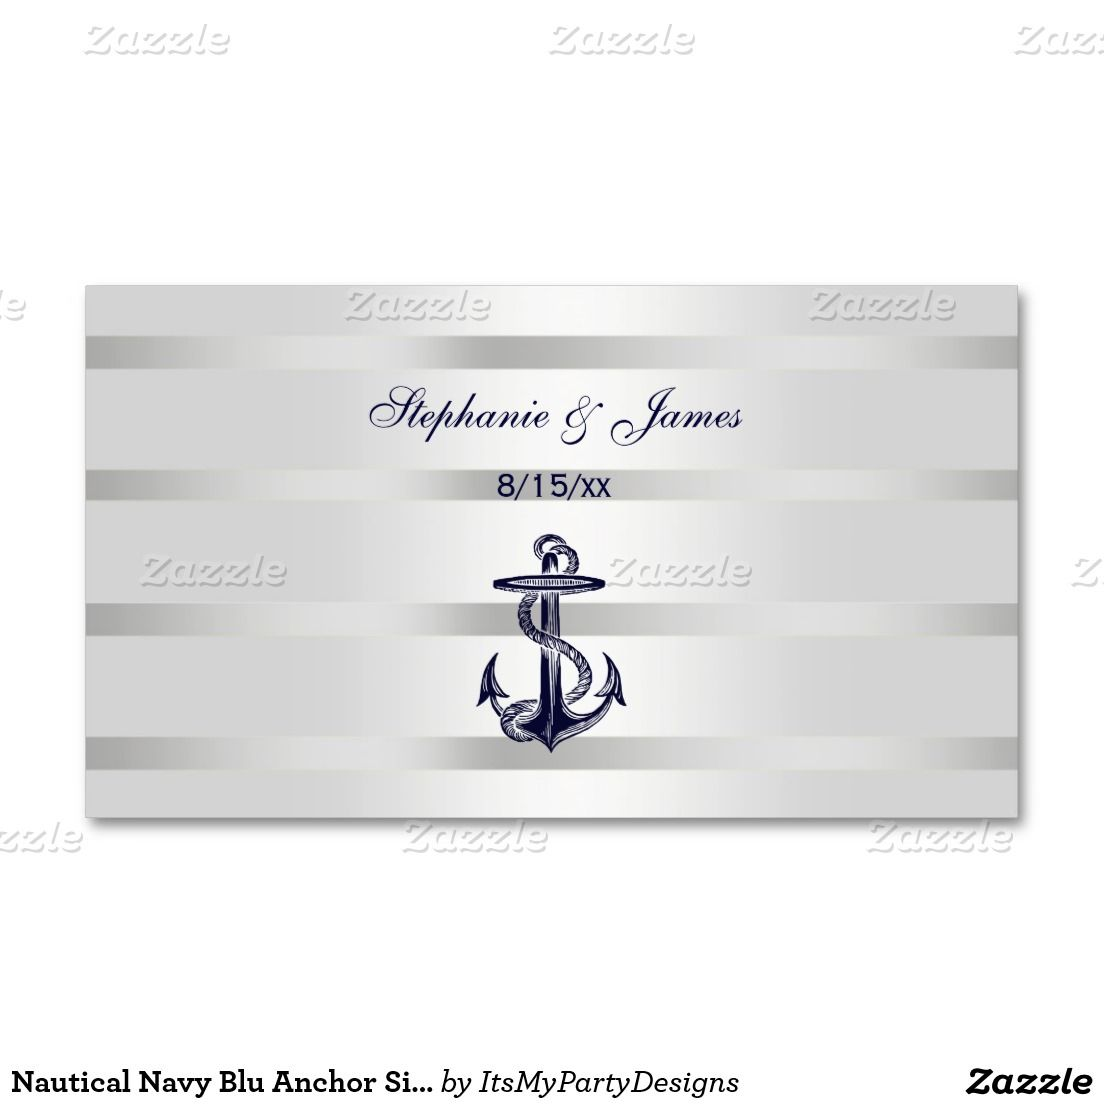 Nautical Navy Blu Anchor Silver Wht Escort Cards Double Sided Standard Business Pack Of 100